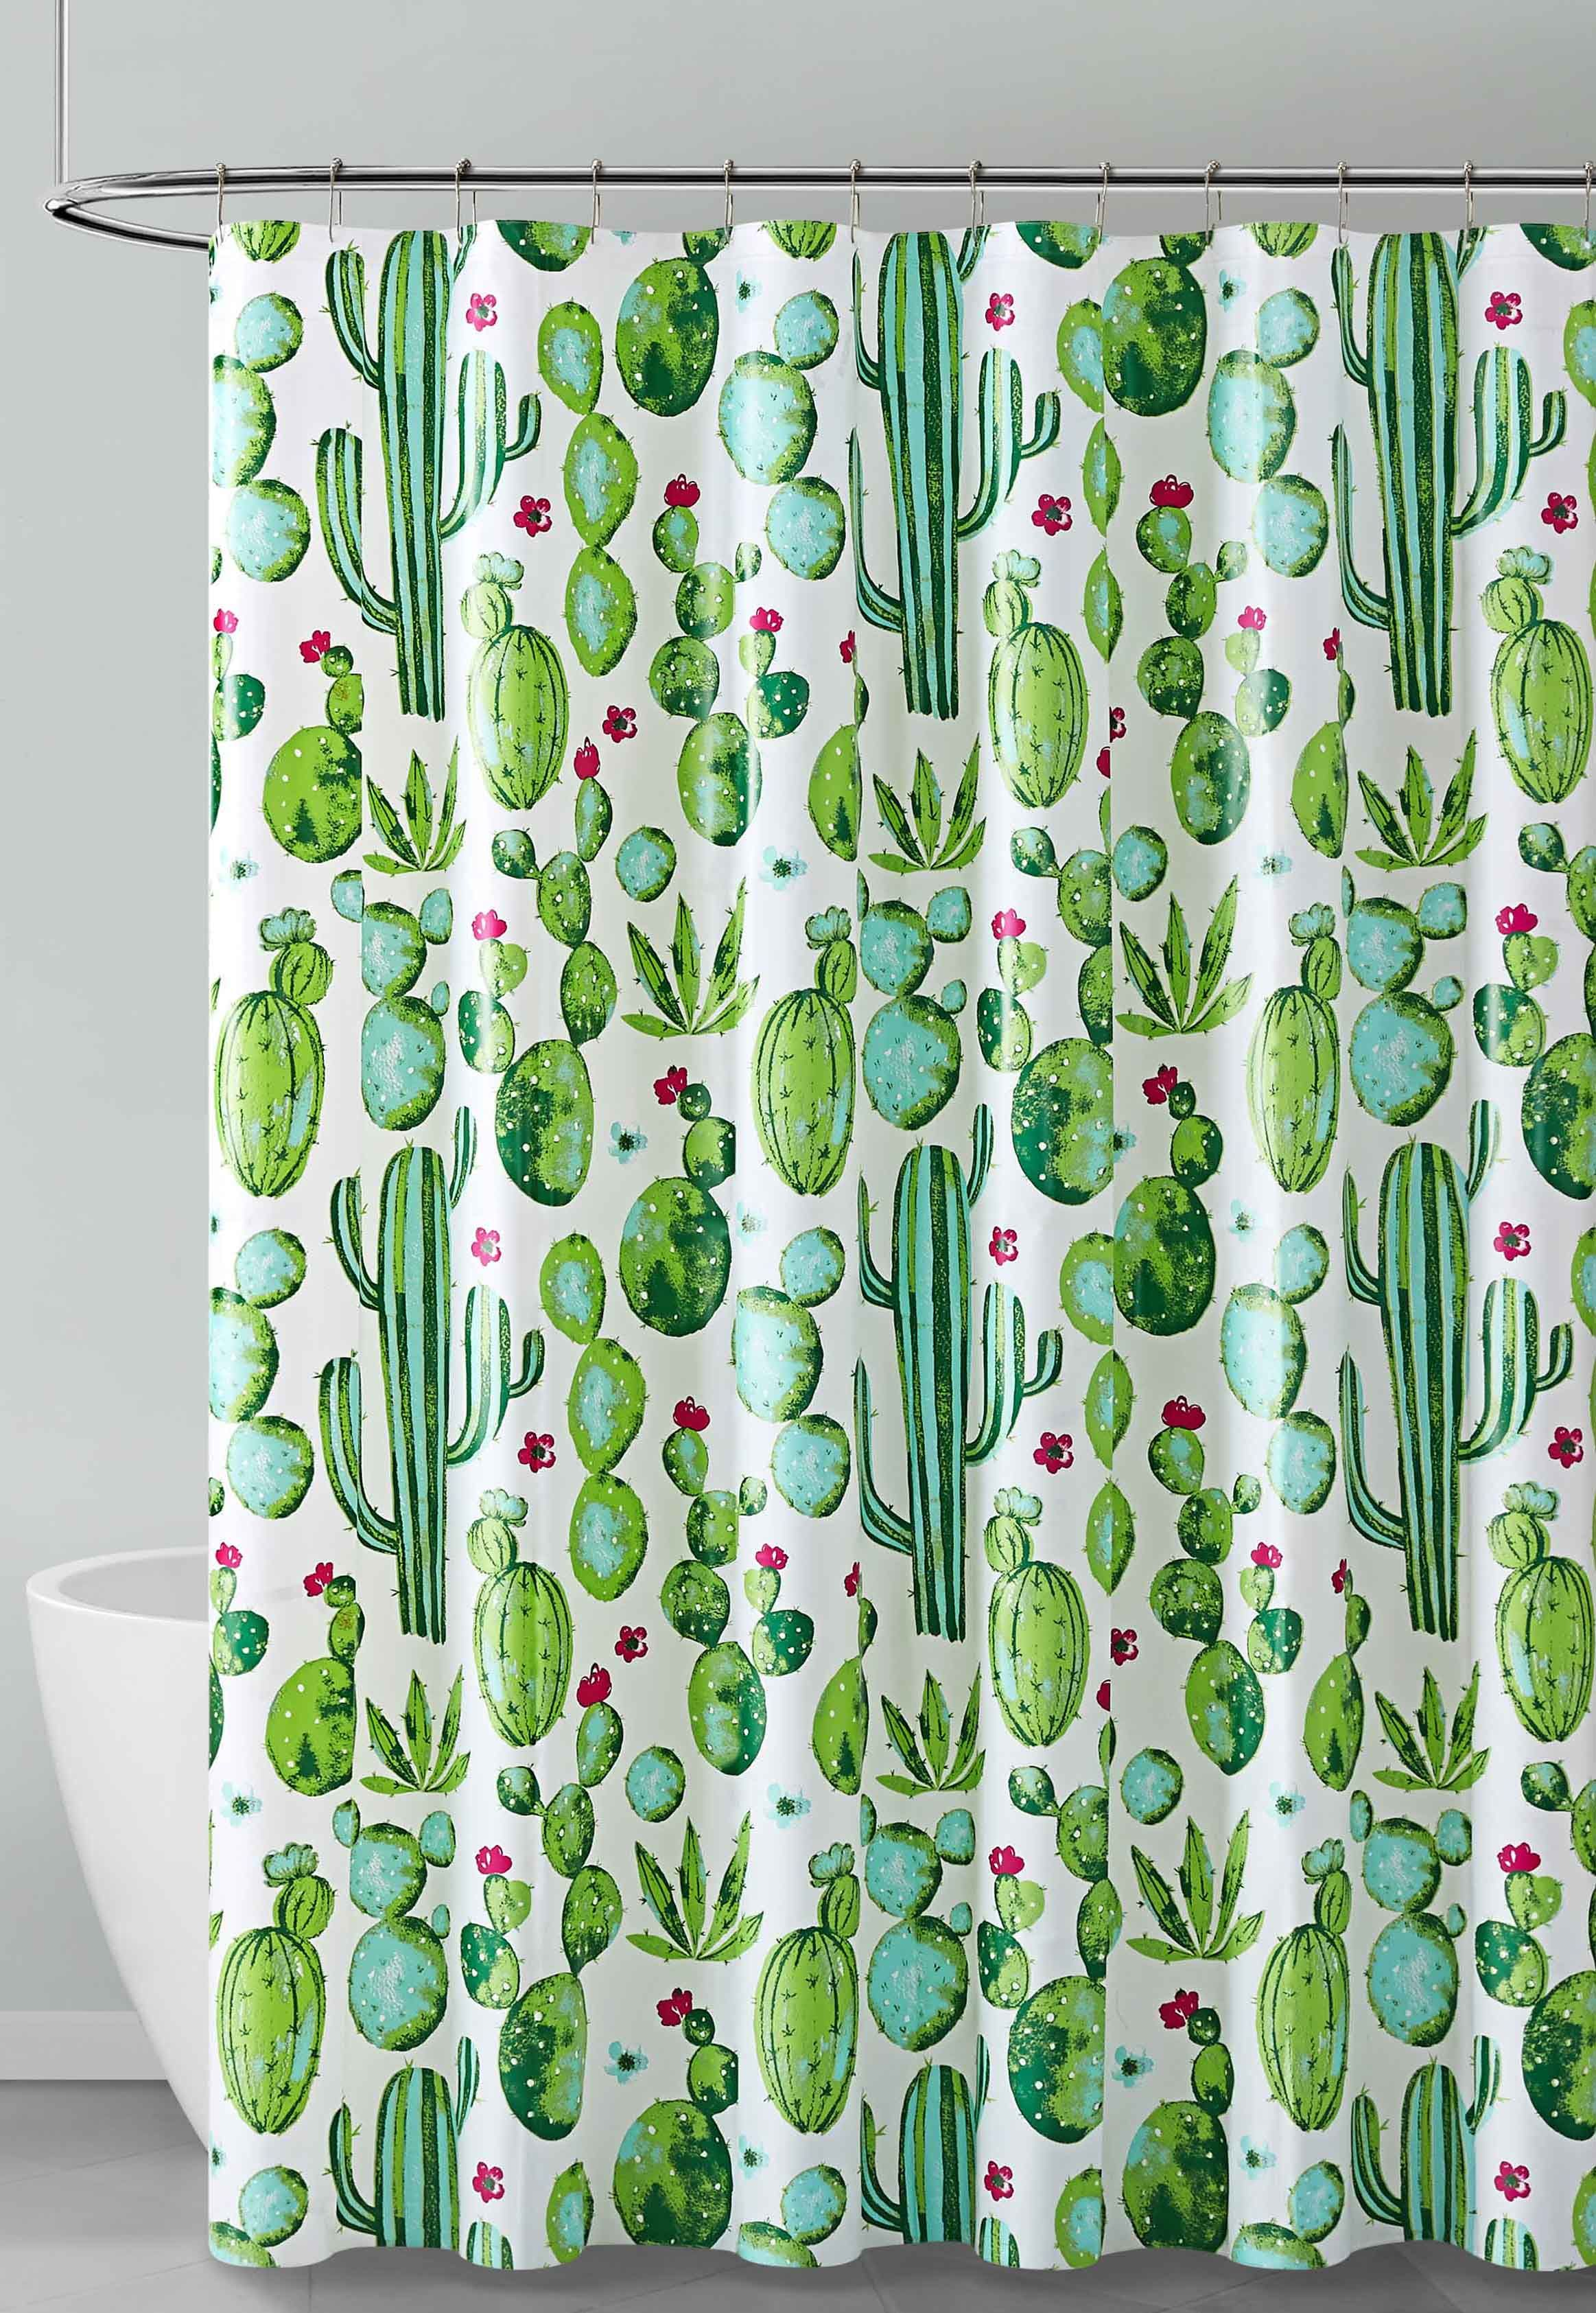 green blue red and white cactus design